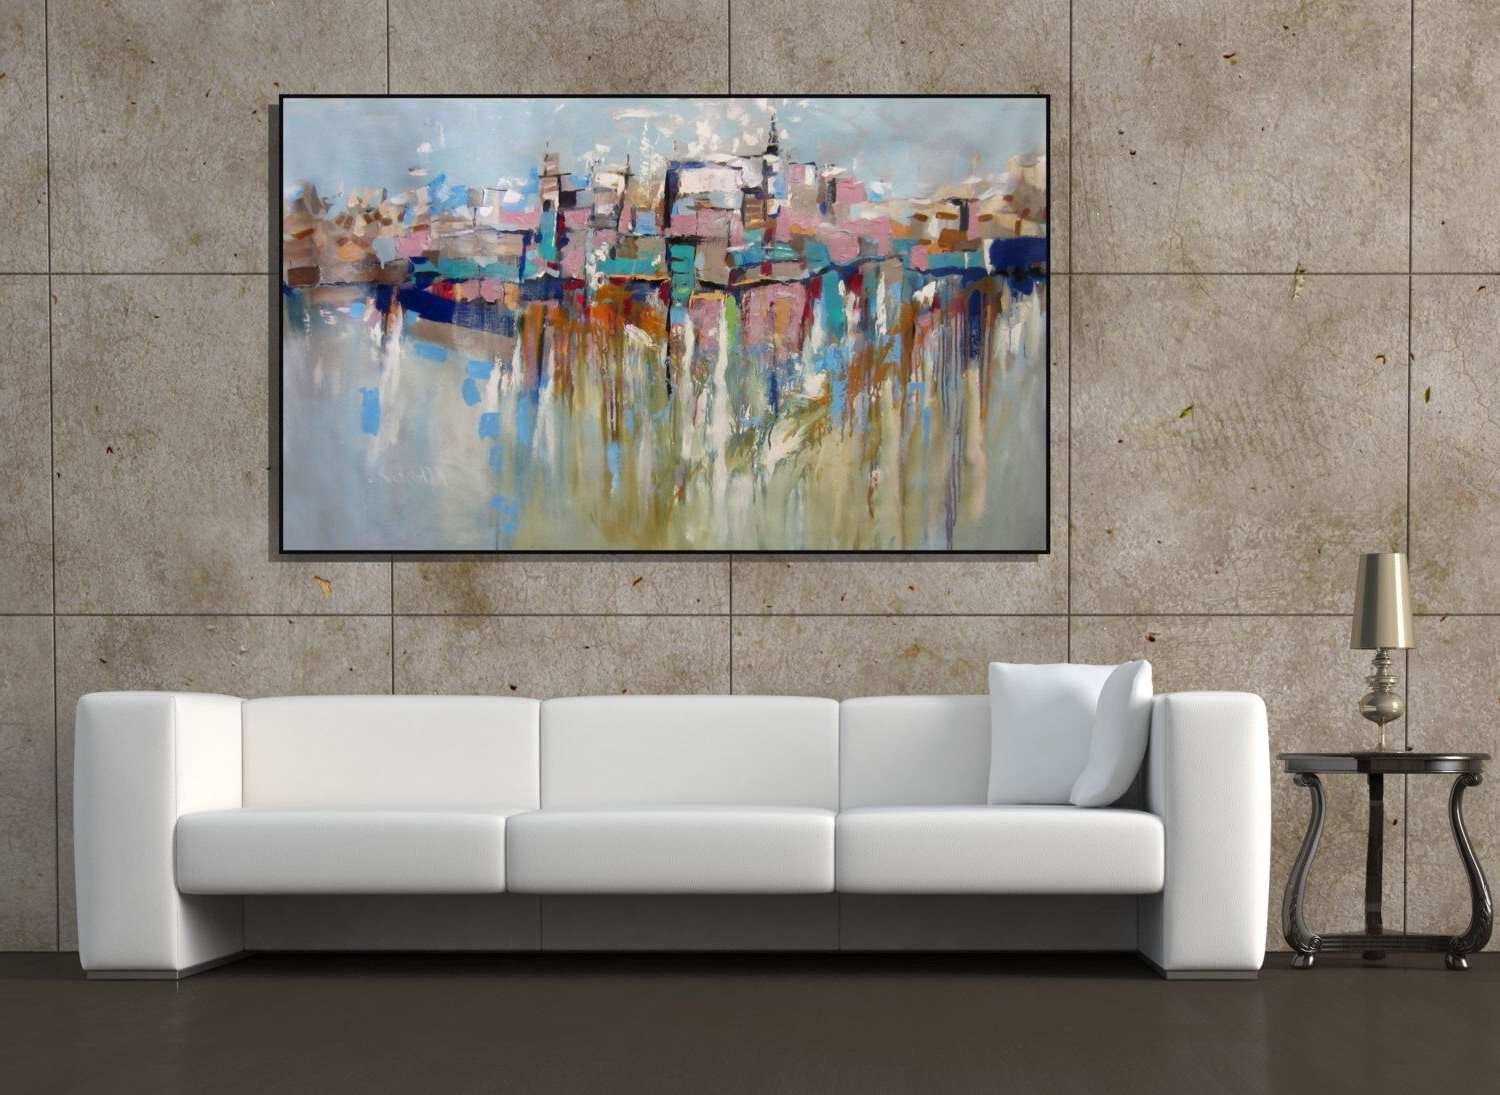 Wall Art Extra Large Painting Cityscape Abstract Painting Textured Pertaining To Recent Large Contemporary Wall Art (View 3 of 15)